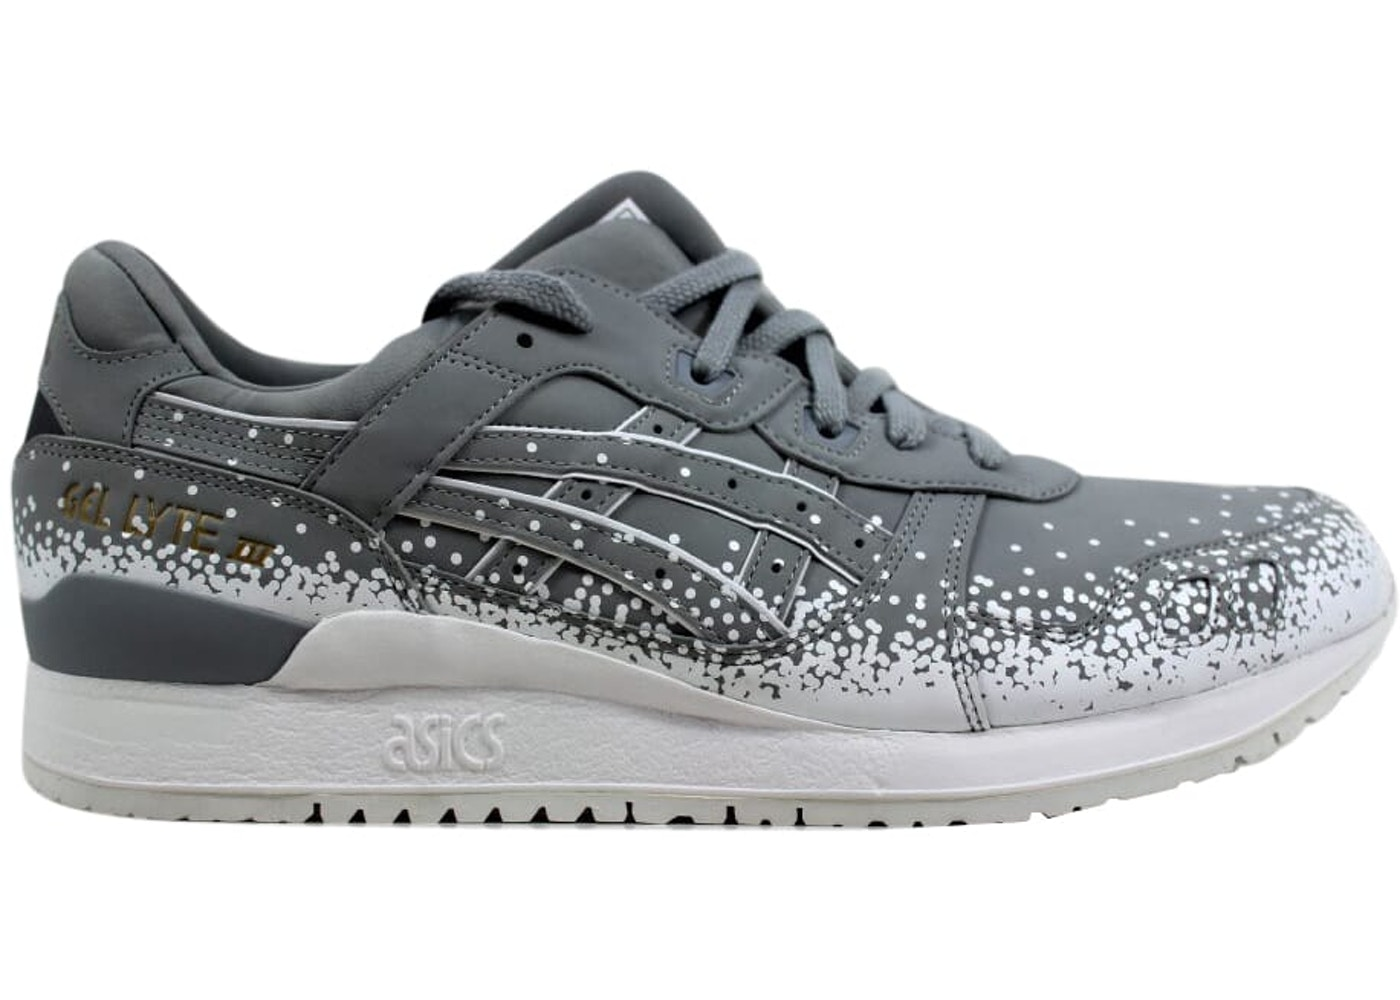 plus récent f39ea 1212d Asics Gel Lyte 3 Light Grey